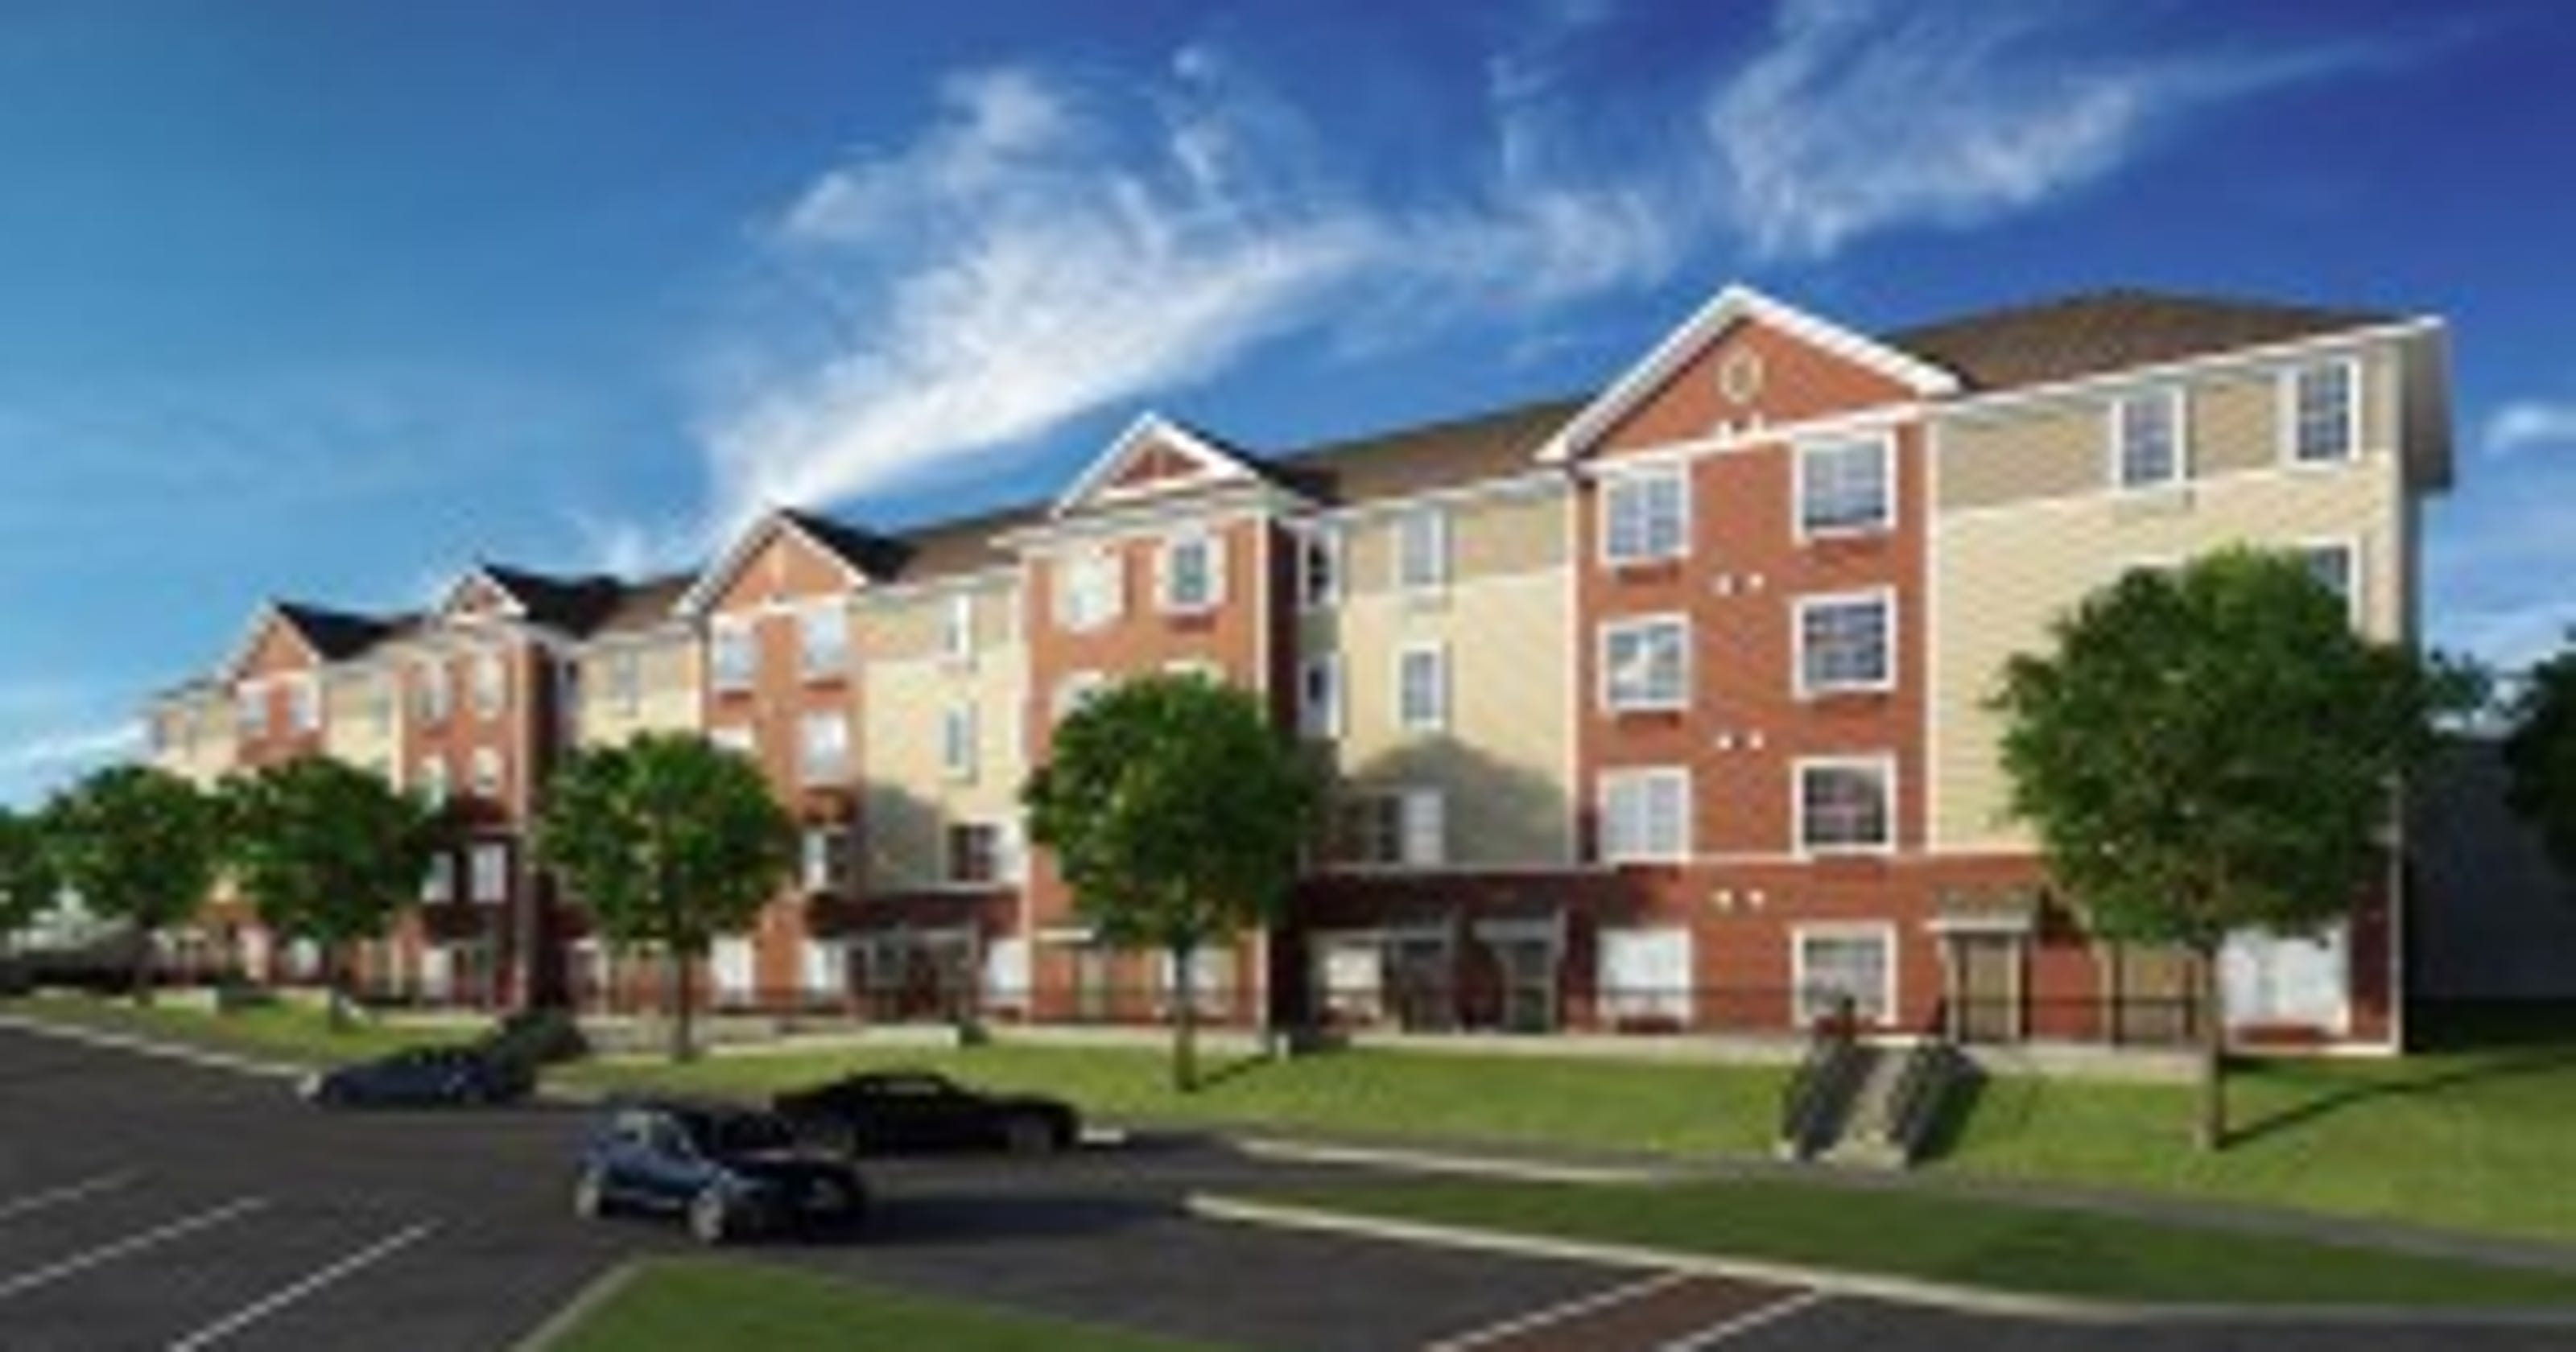 New affordable housing opens in Yonkers